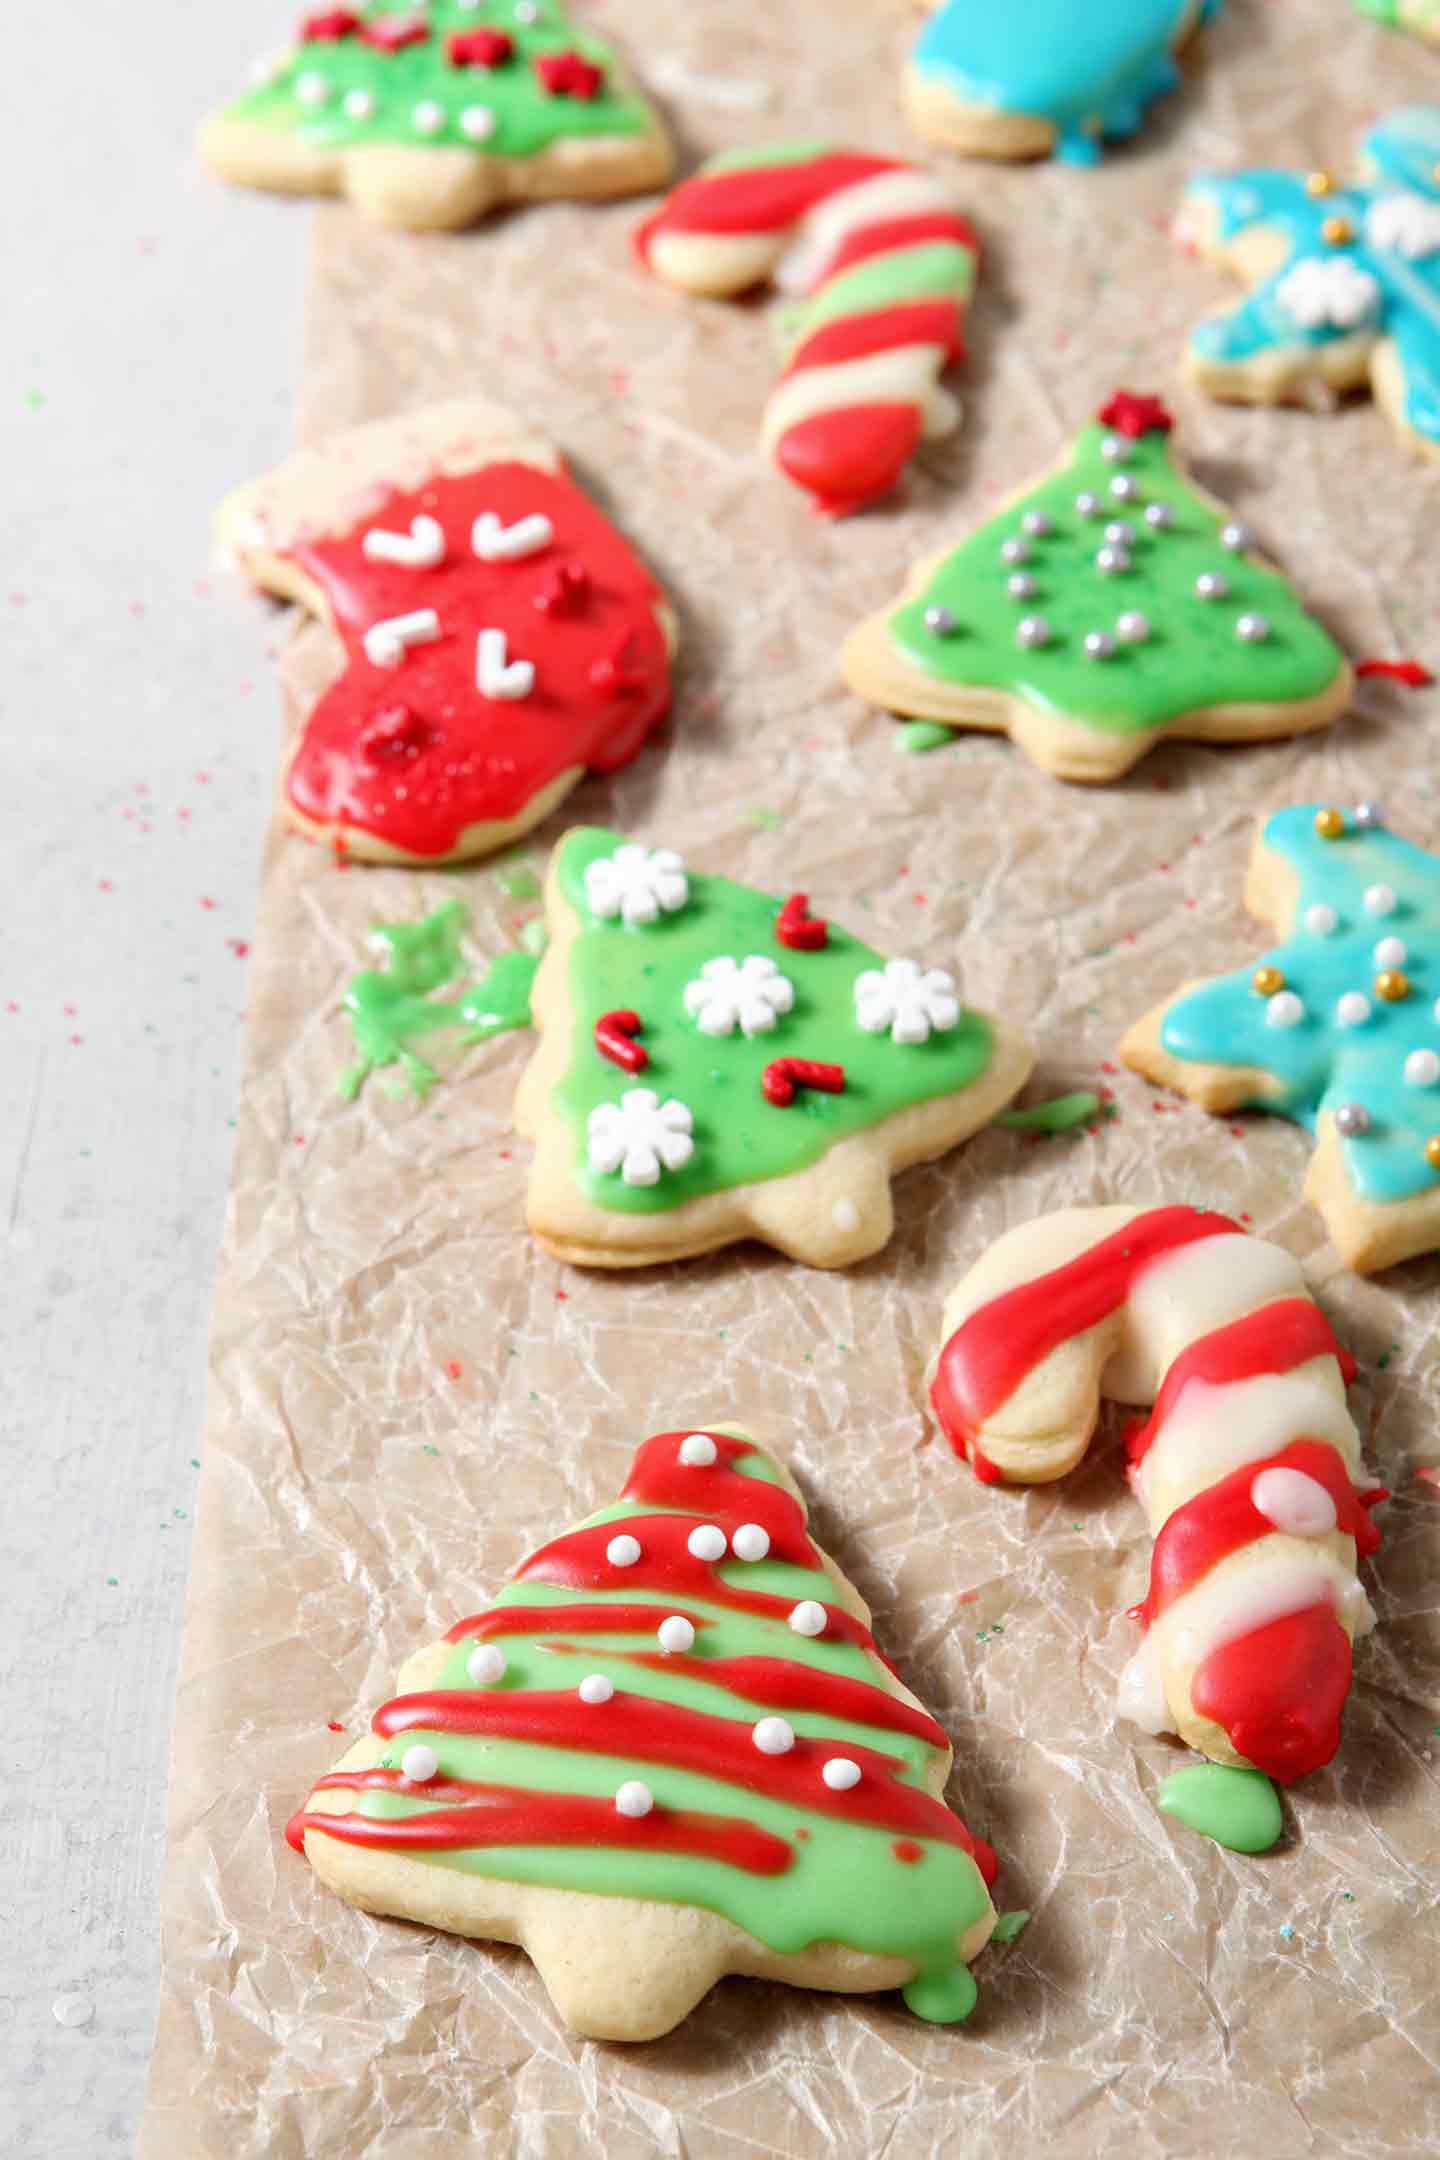 Iced and decorated All-Butter Tea Cake Cookies dry on a piece of parchment paper